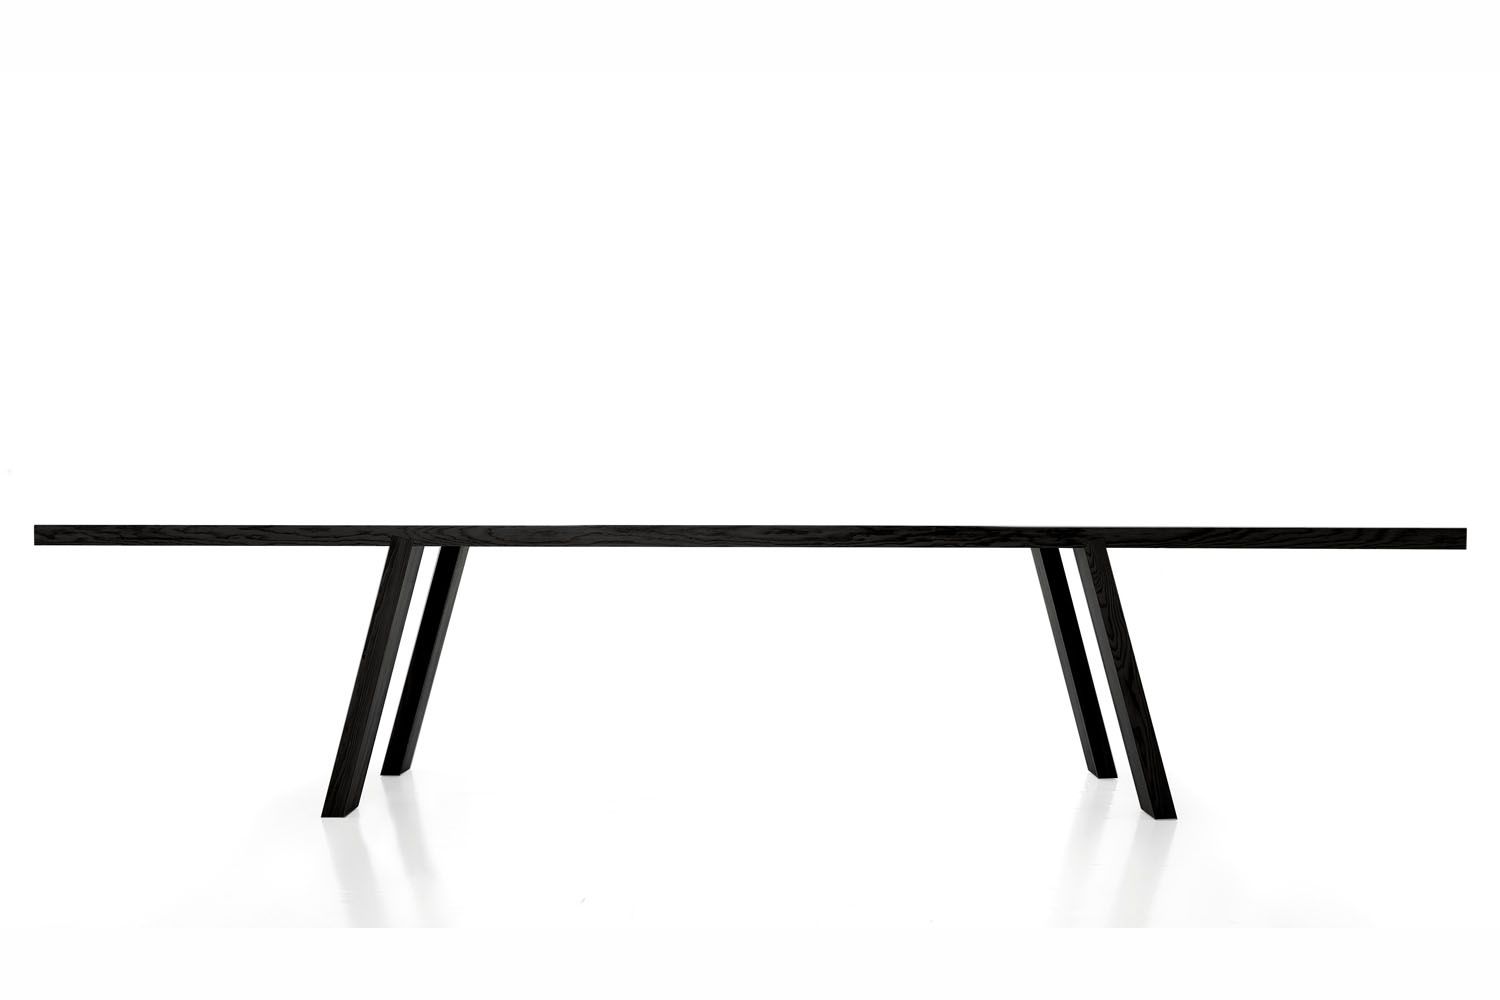 1500x1000 Minimo Small Table By Piero Lissoni For Porro Space Furniture